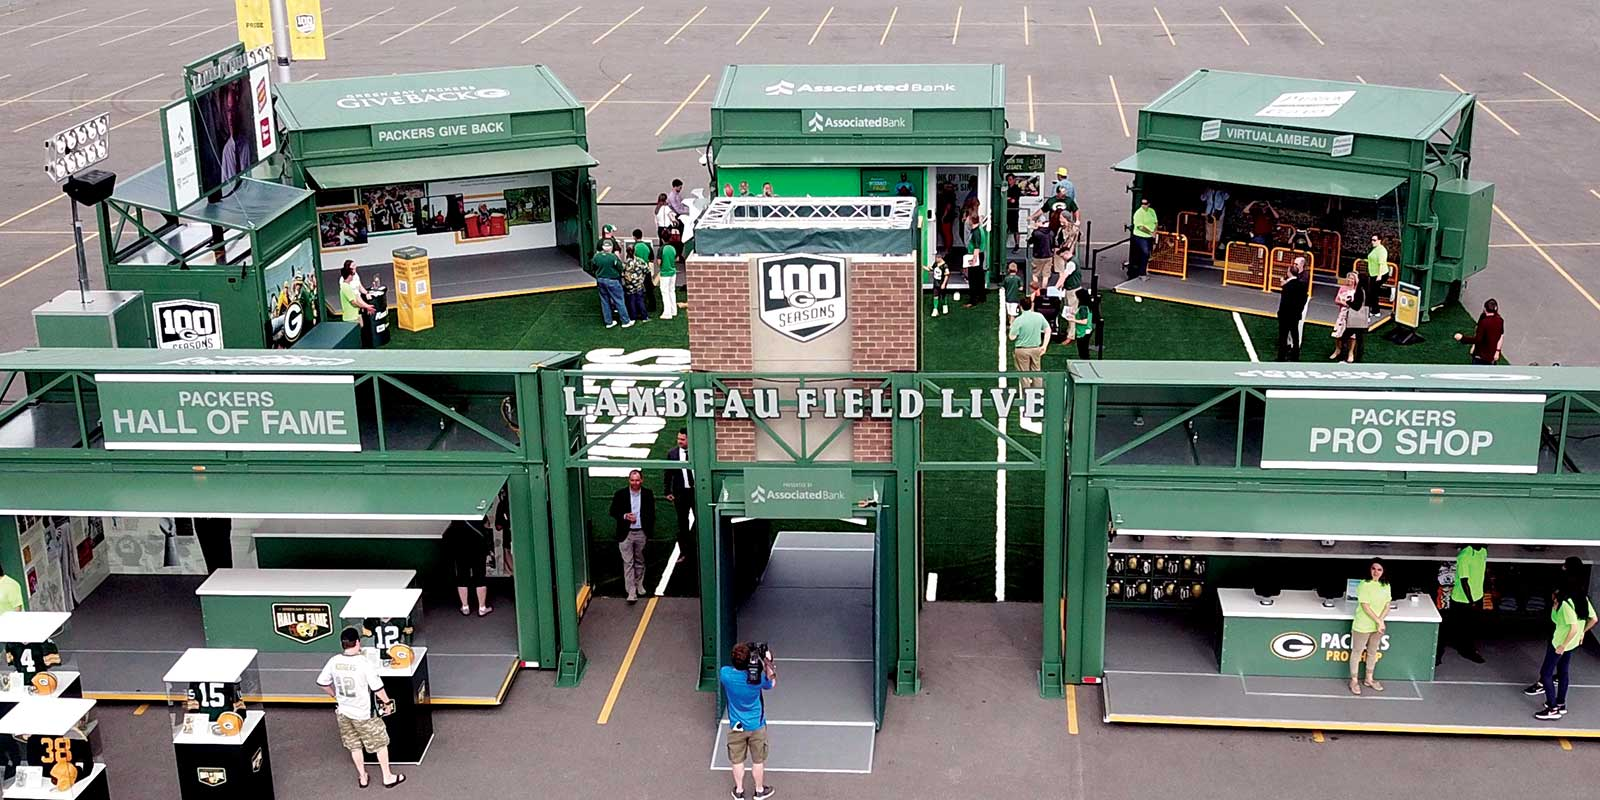 80' X 80' SCALABLE EVENT SITE / LAMBEAU FIELD LIVE